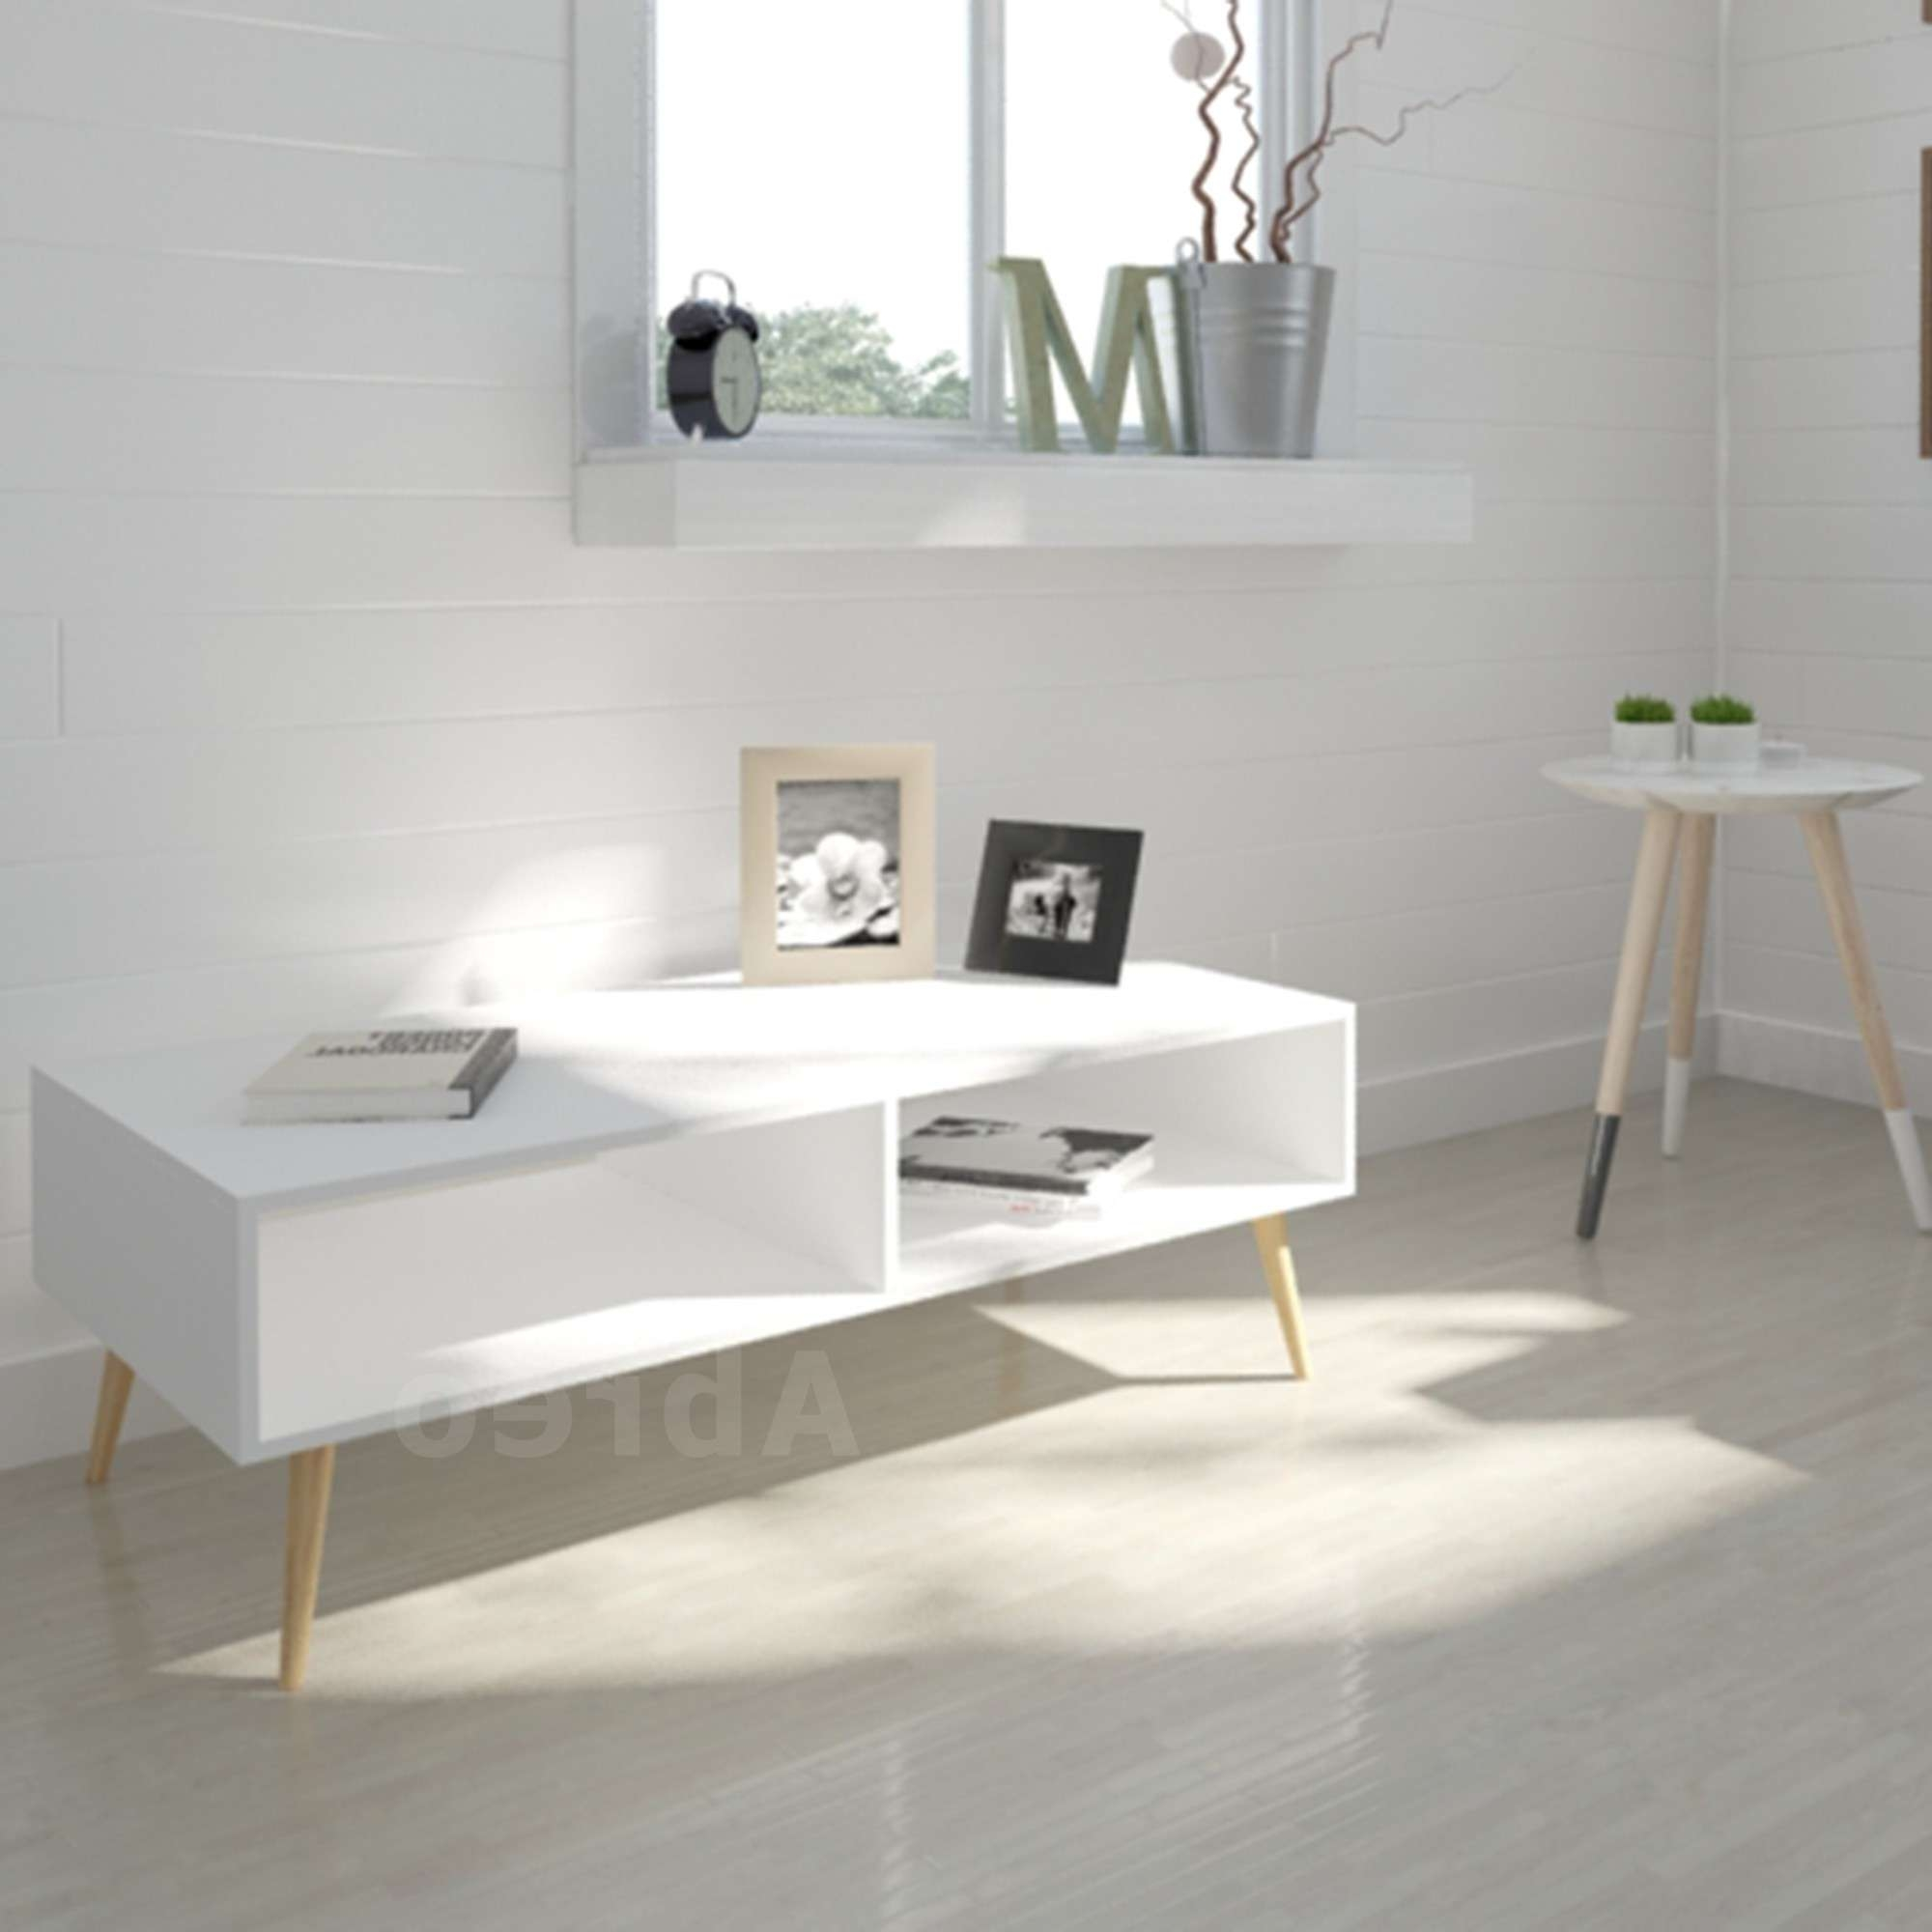 Scandinavian Modern Tv Stand From Abreo Abreo Home Furniture With Scandinavian Design Tv Cabinets (View 17 of 20)